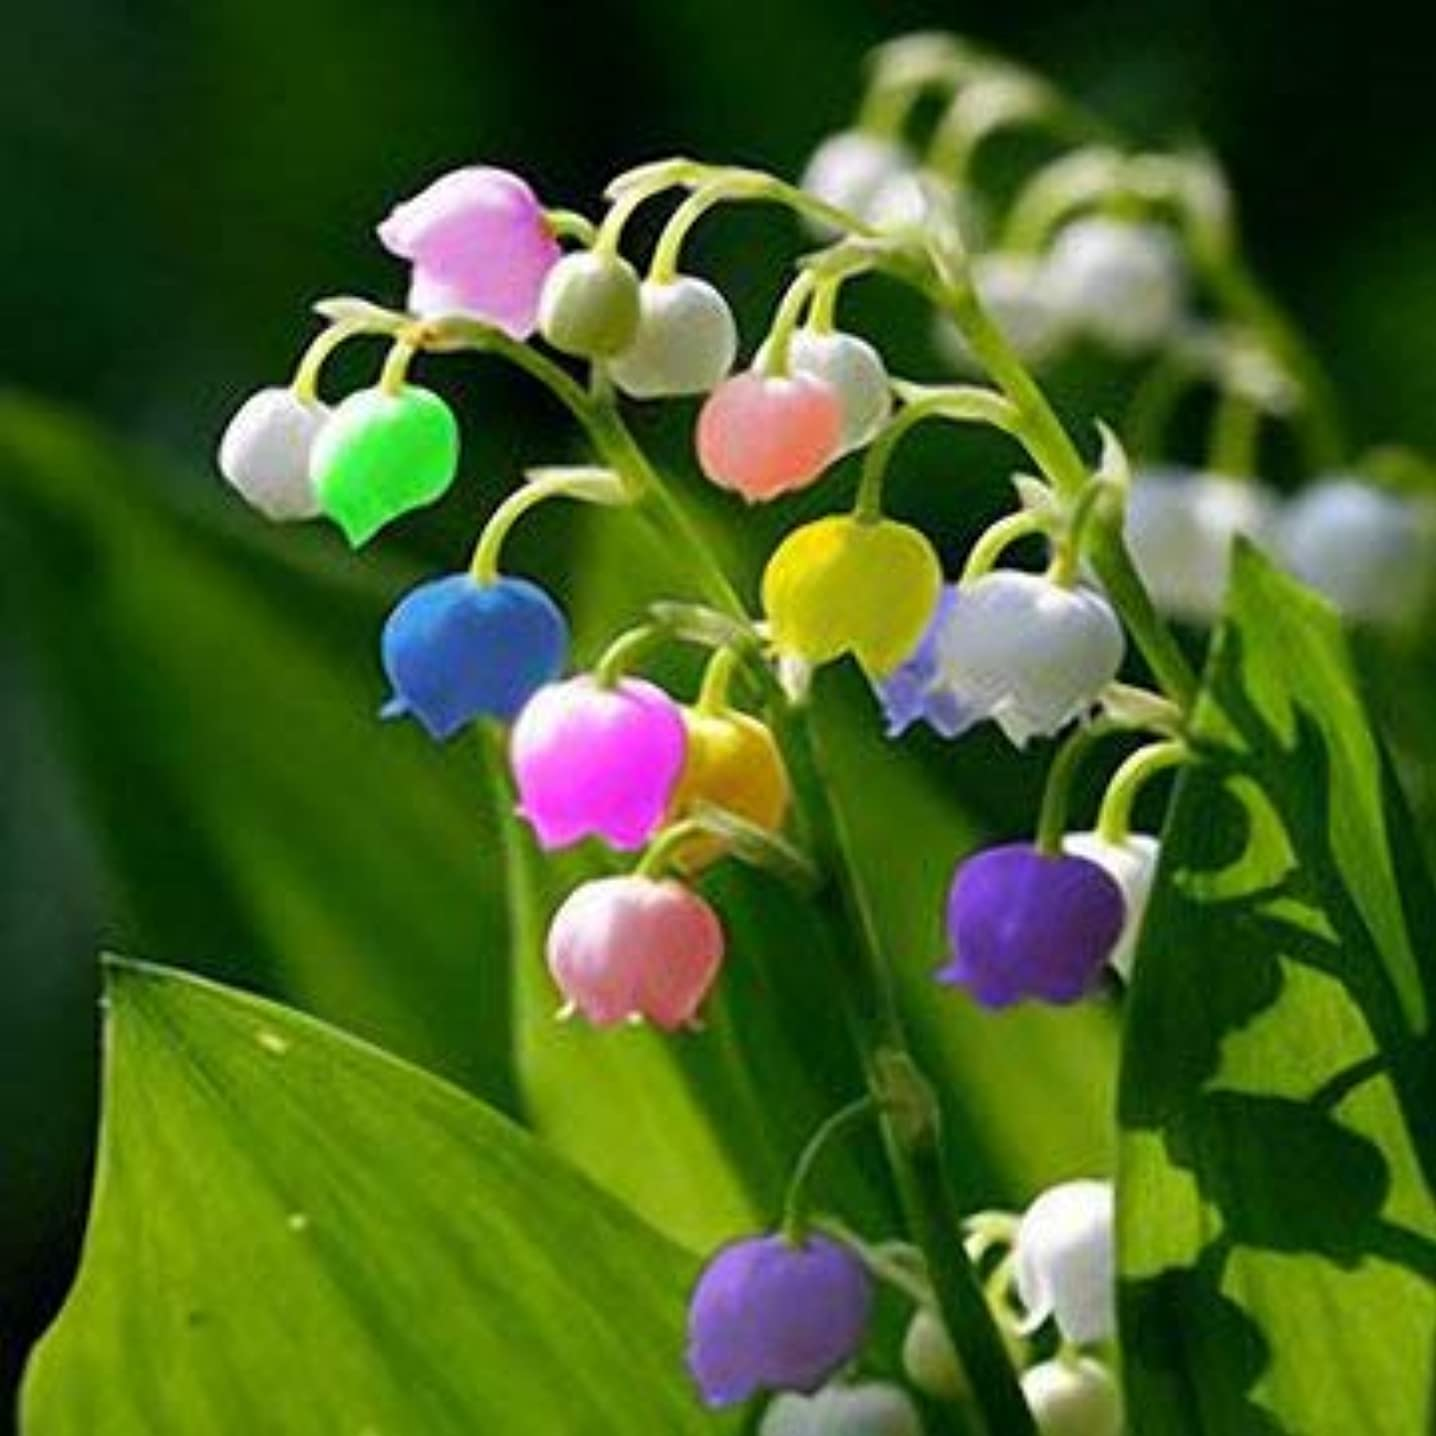 50 PCS Rare Lily of Valley Flower Seeds Colored Rainbow Bell Orchid Seed Garden Bonsai - Gardening Seeds - 1 x 50 PCS Egrow Multi-colored Valley Lily Flower Seeds